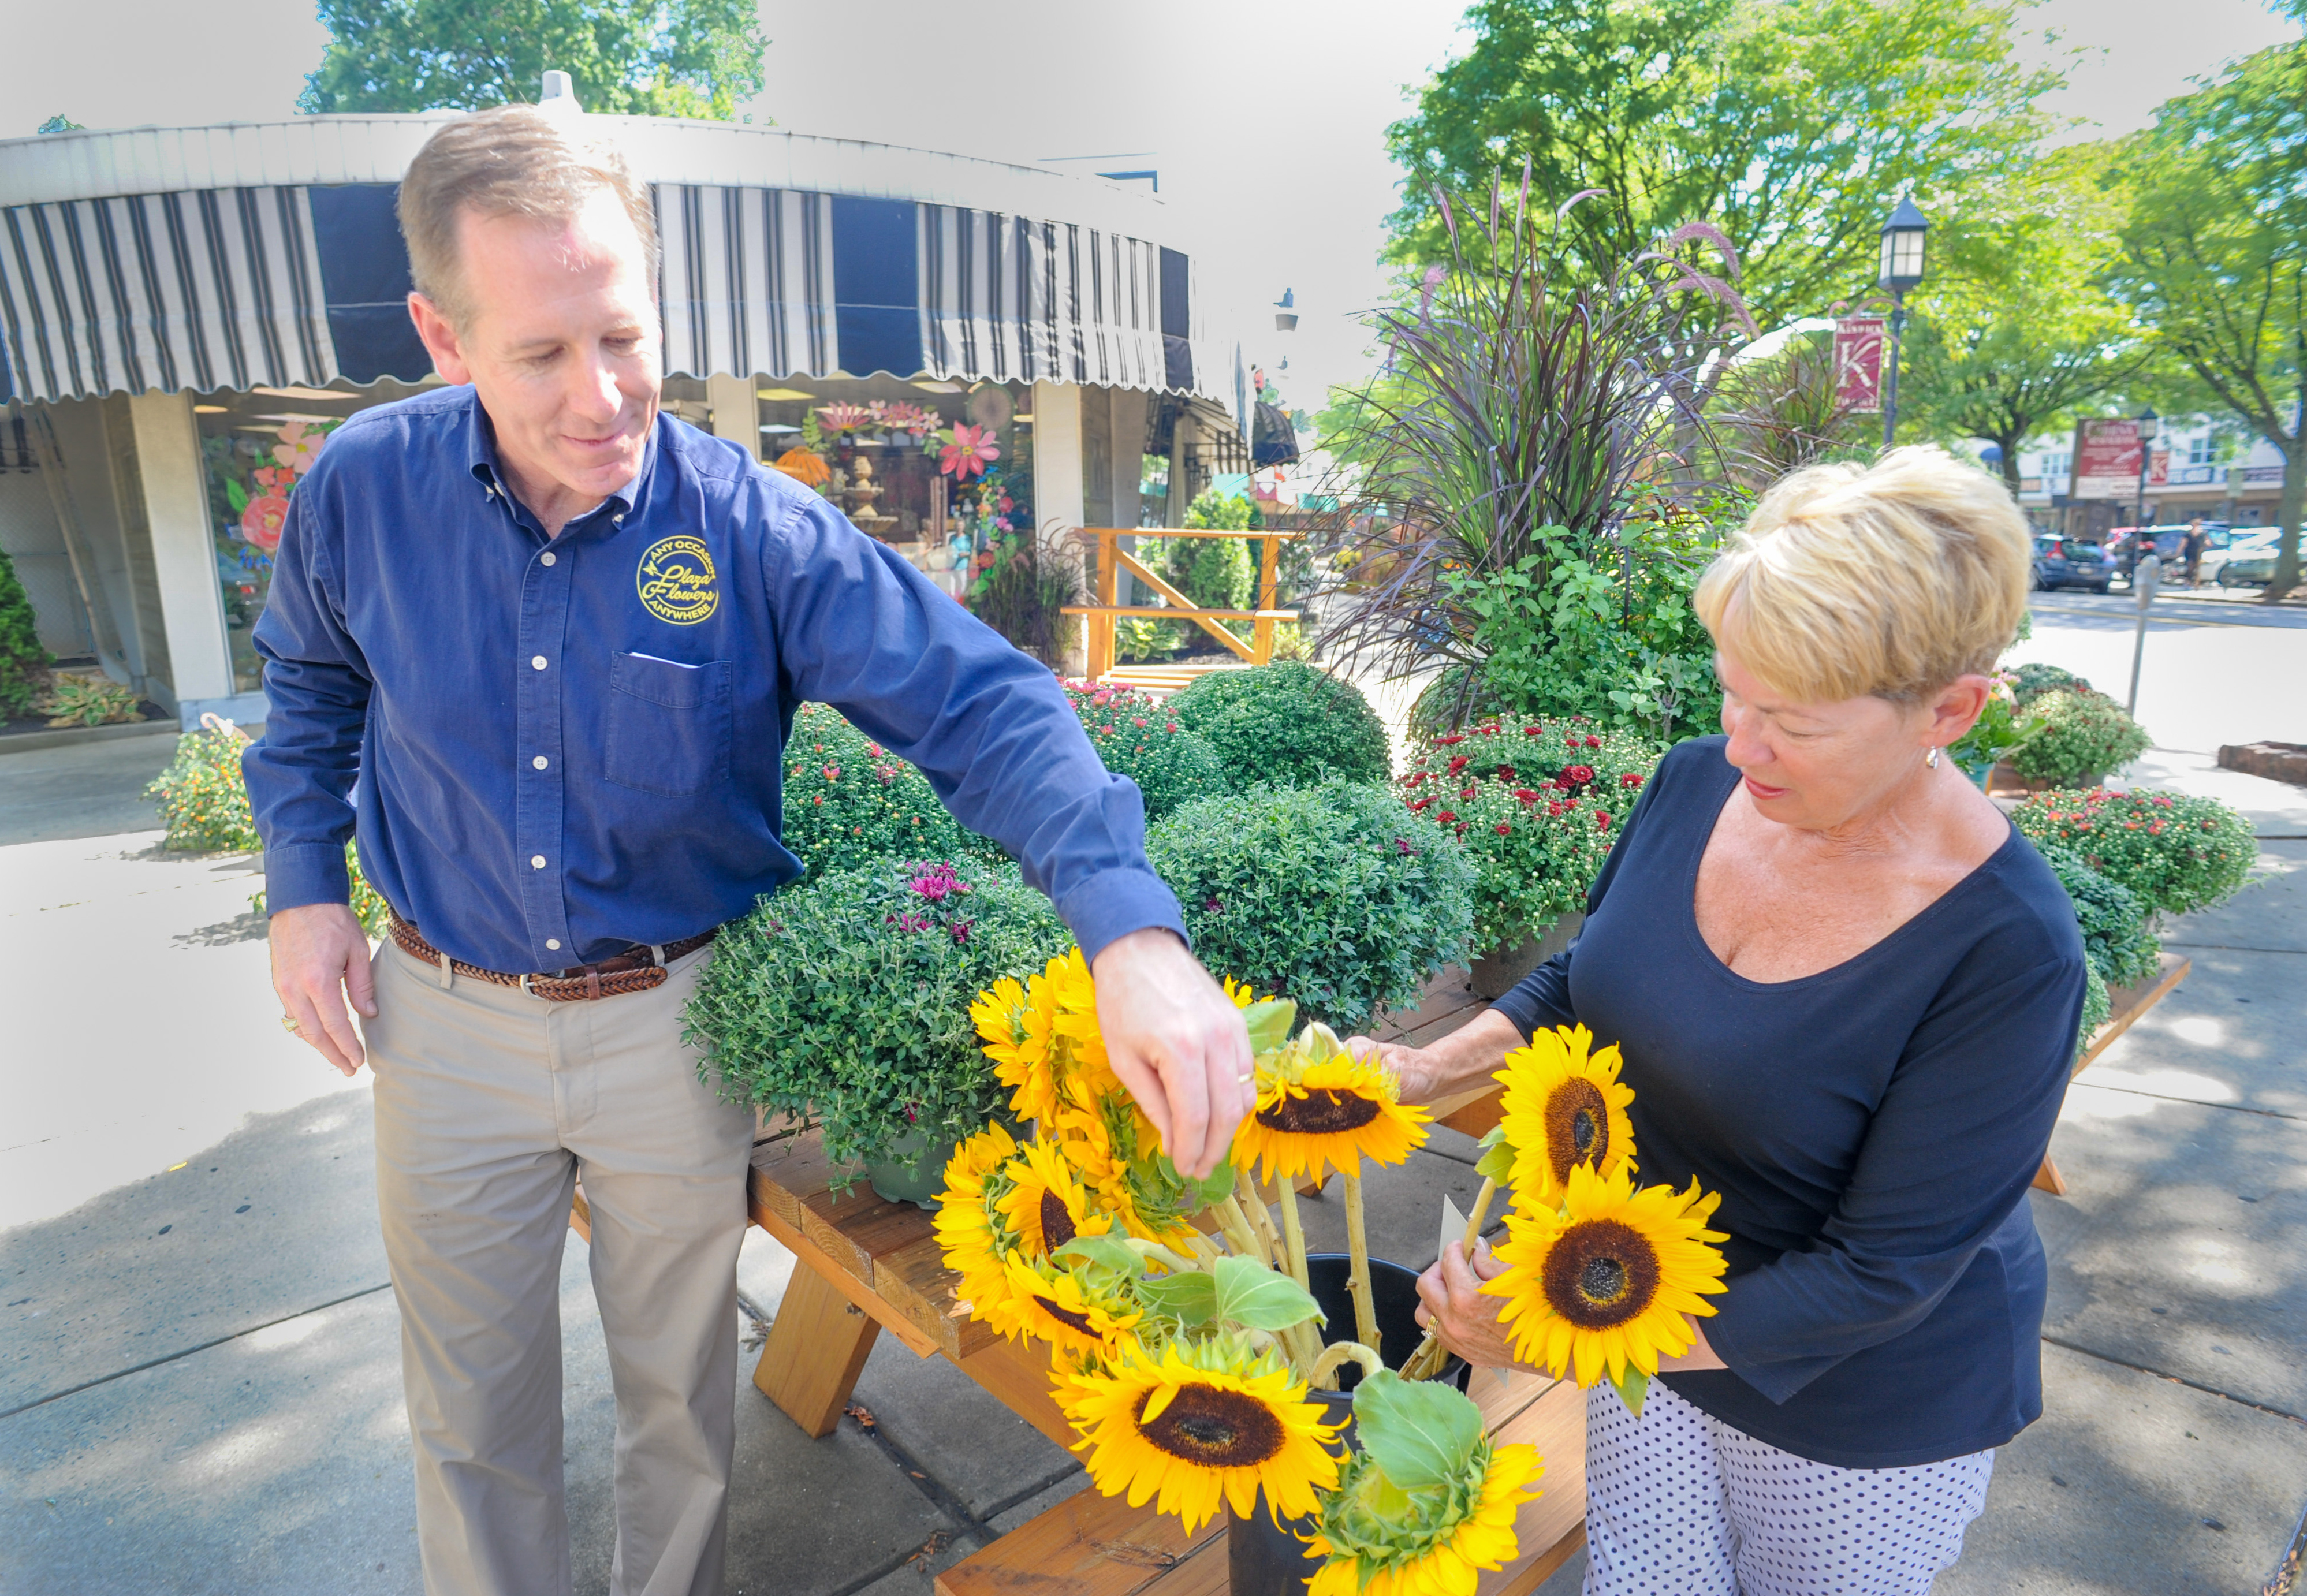 From left, new owner Chris Drummond and Dottie Pannepacker look at some sunflowers at Penny´s Flowers Tuesday, September 04, 2018 in Glenside, Pennsylvania.